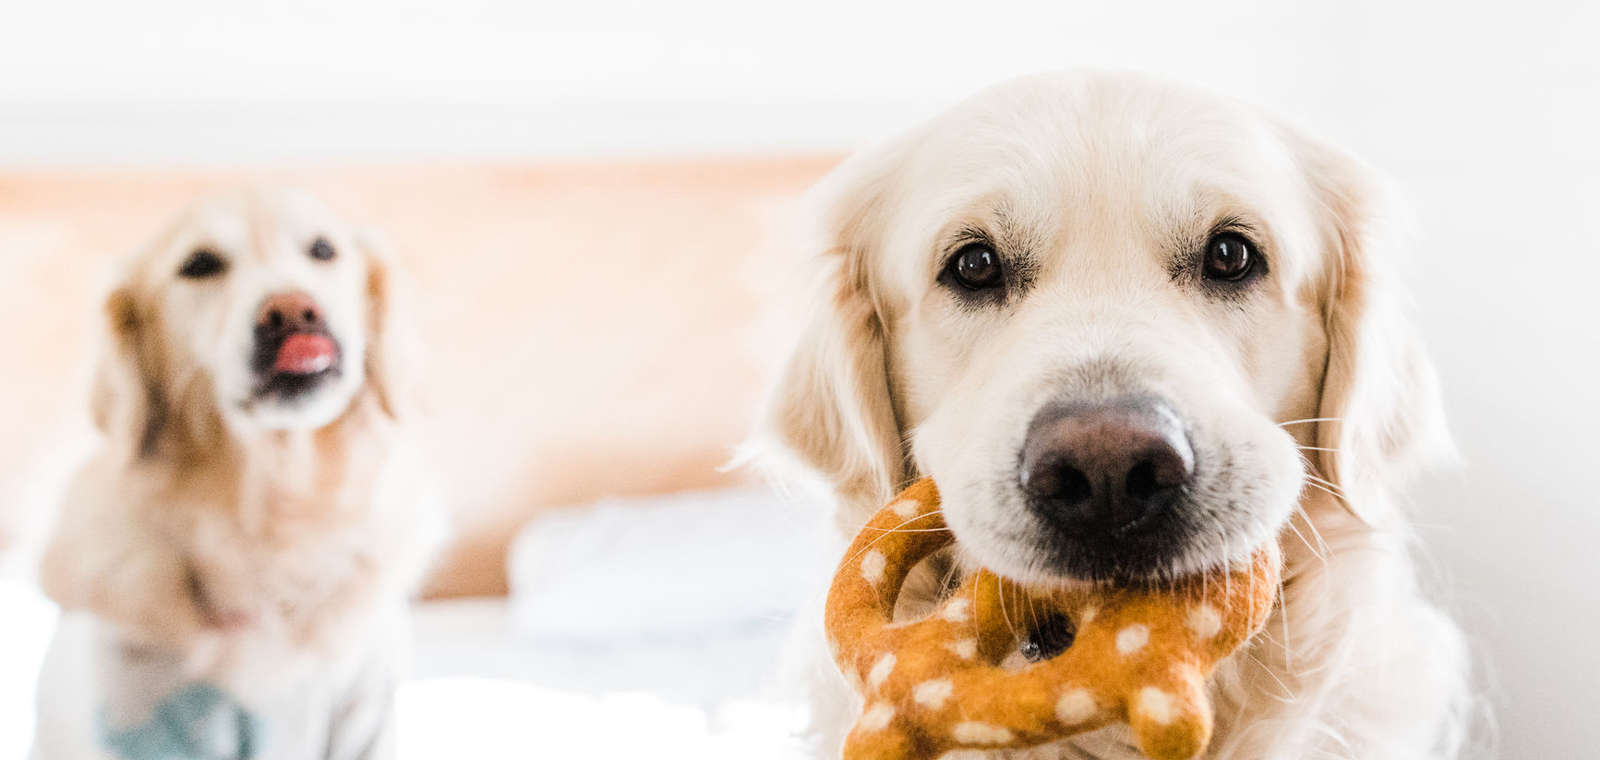 english cream golden retriever holding pretzel toy while another retriever dog pokes her tongue out in the background